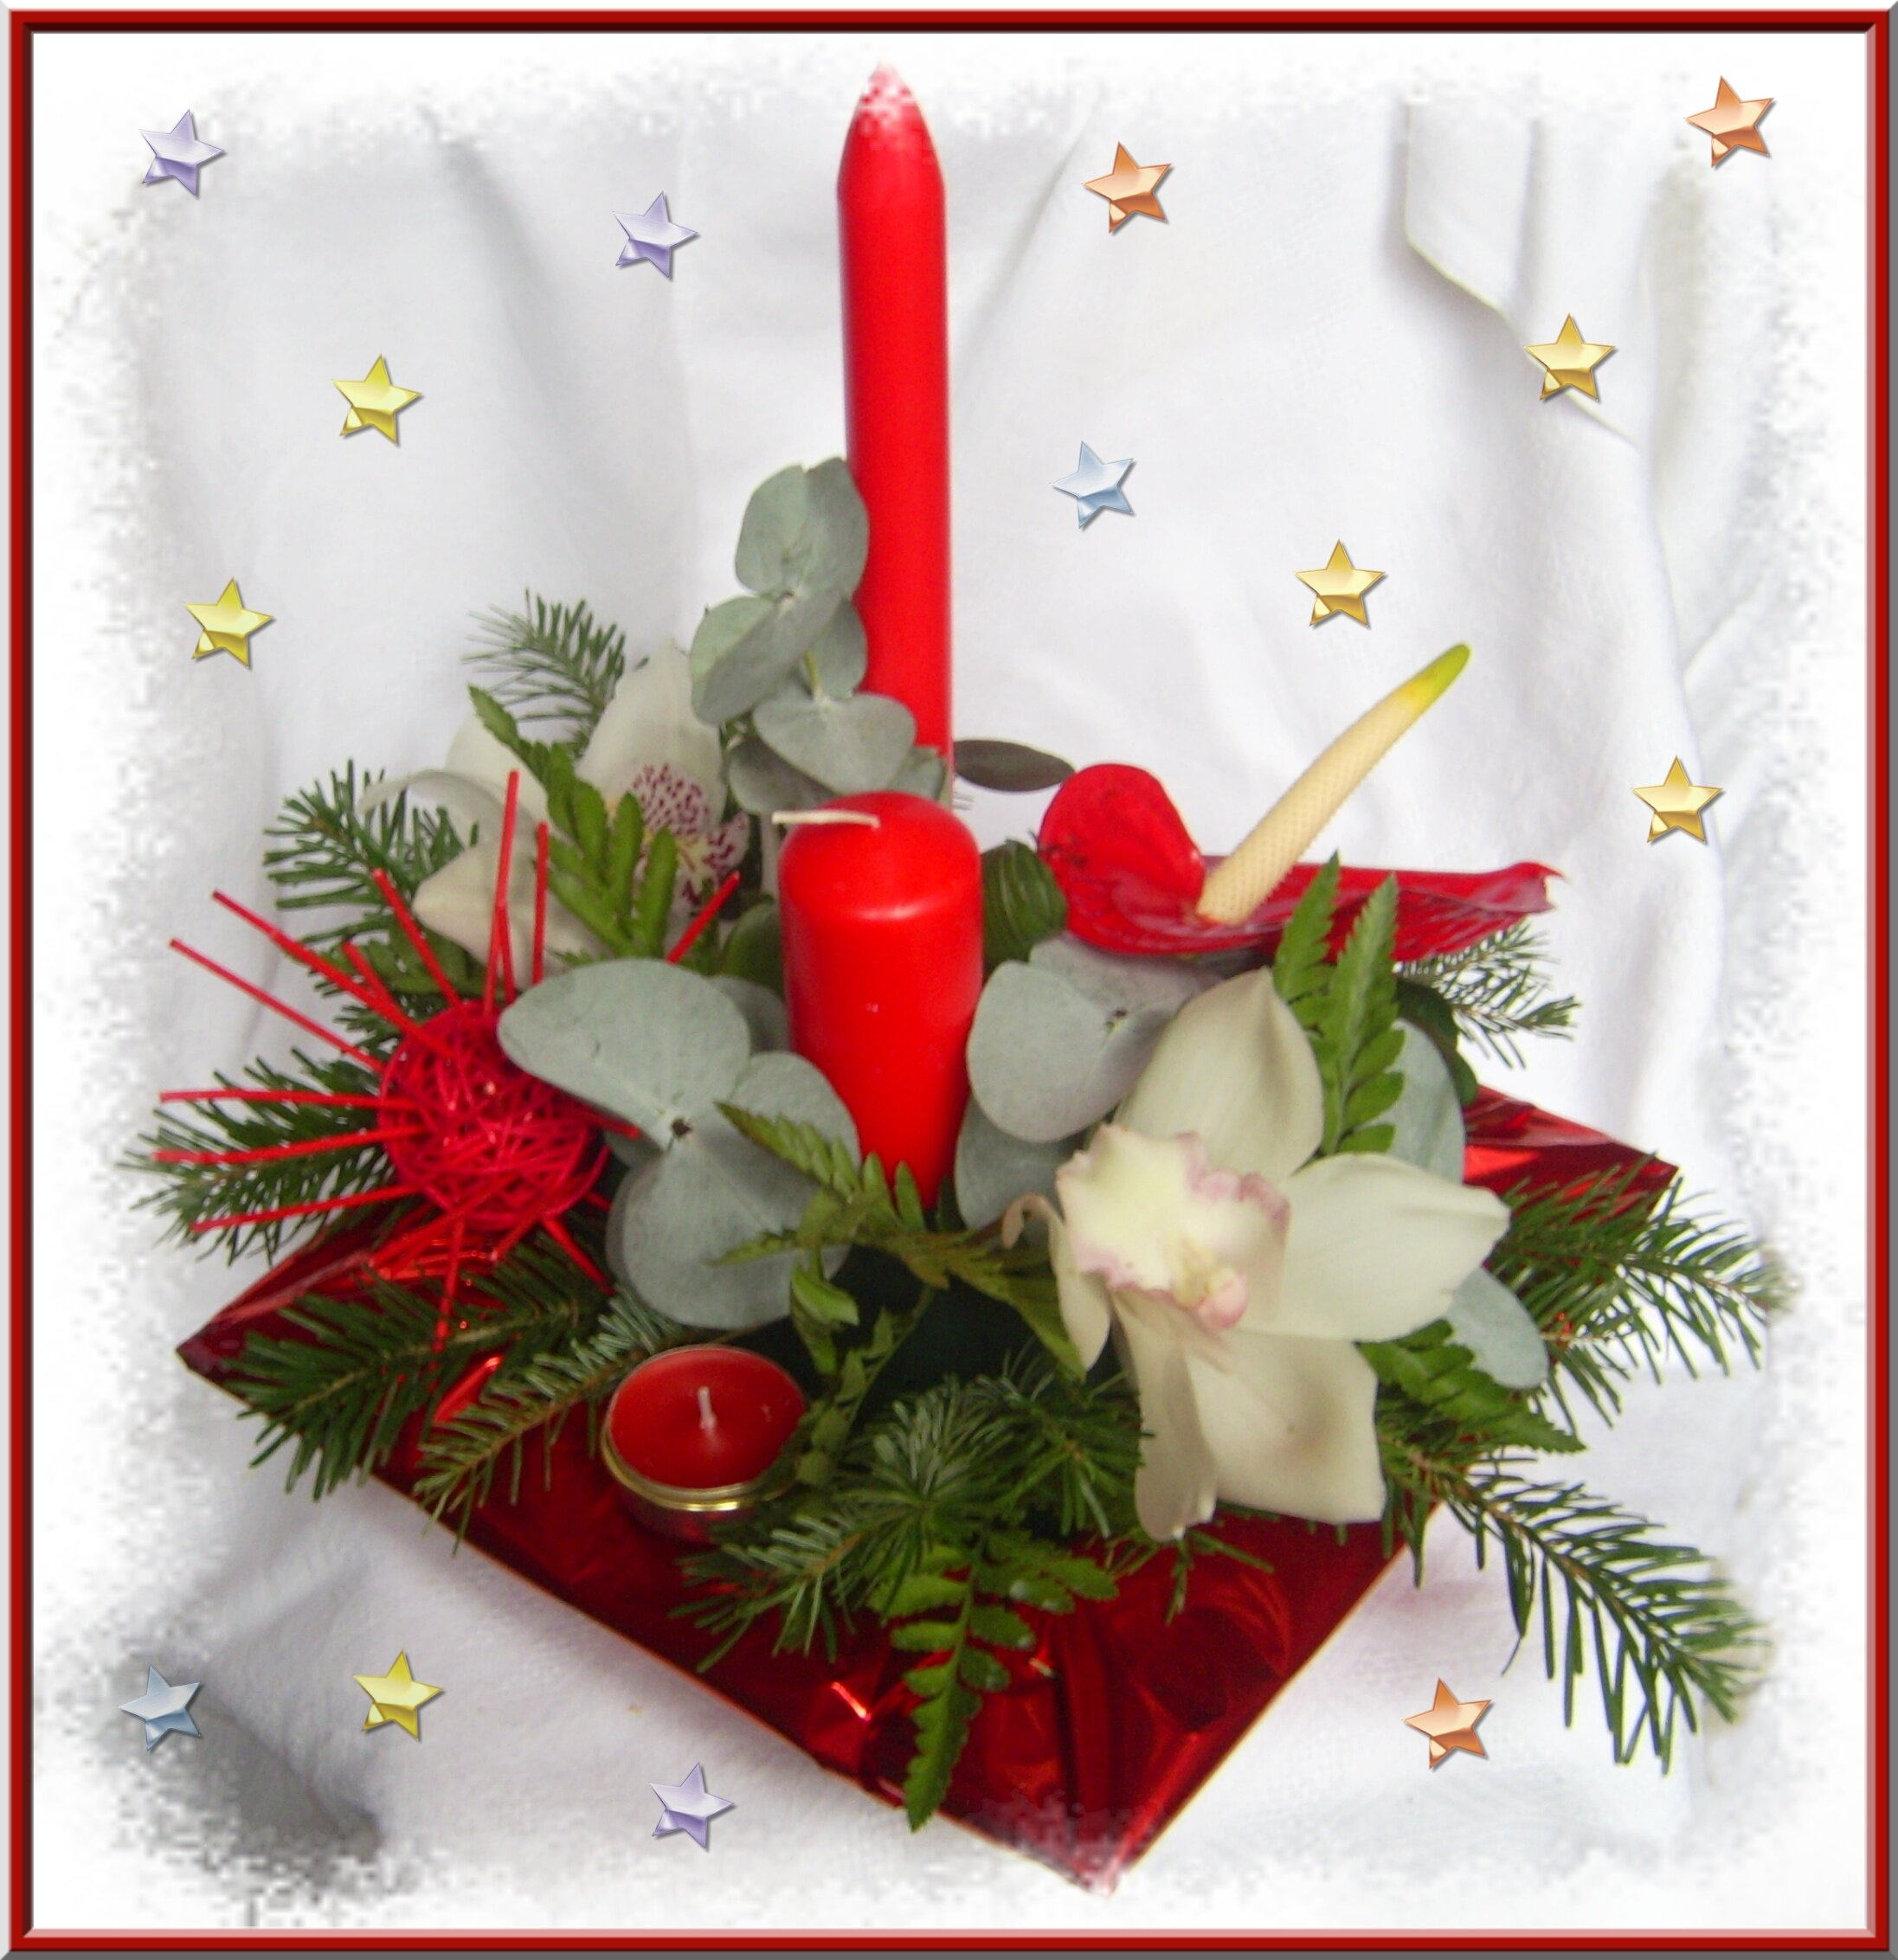 Deco florale pour noel for Decoration florale noel